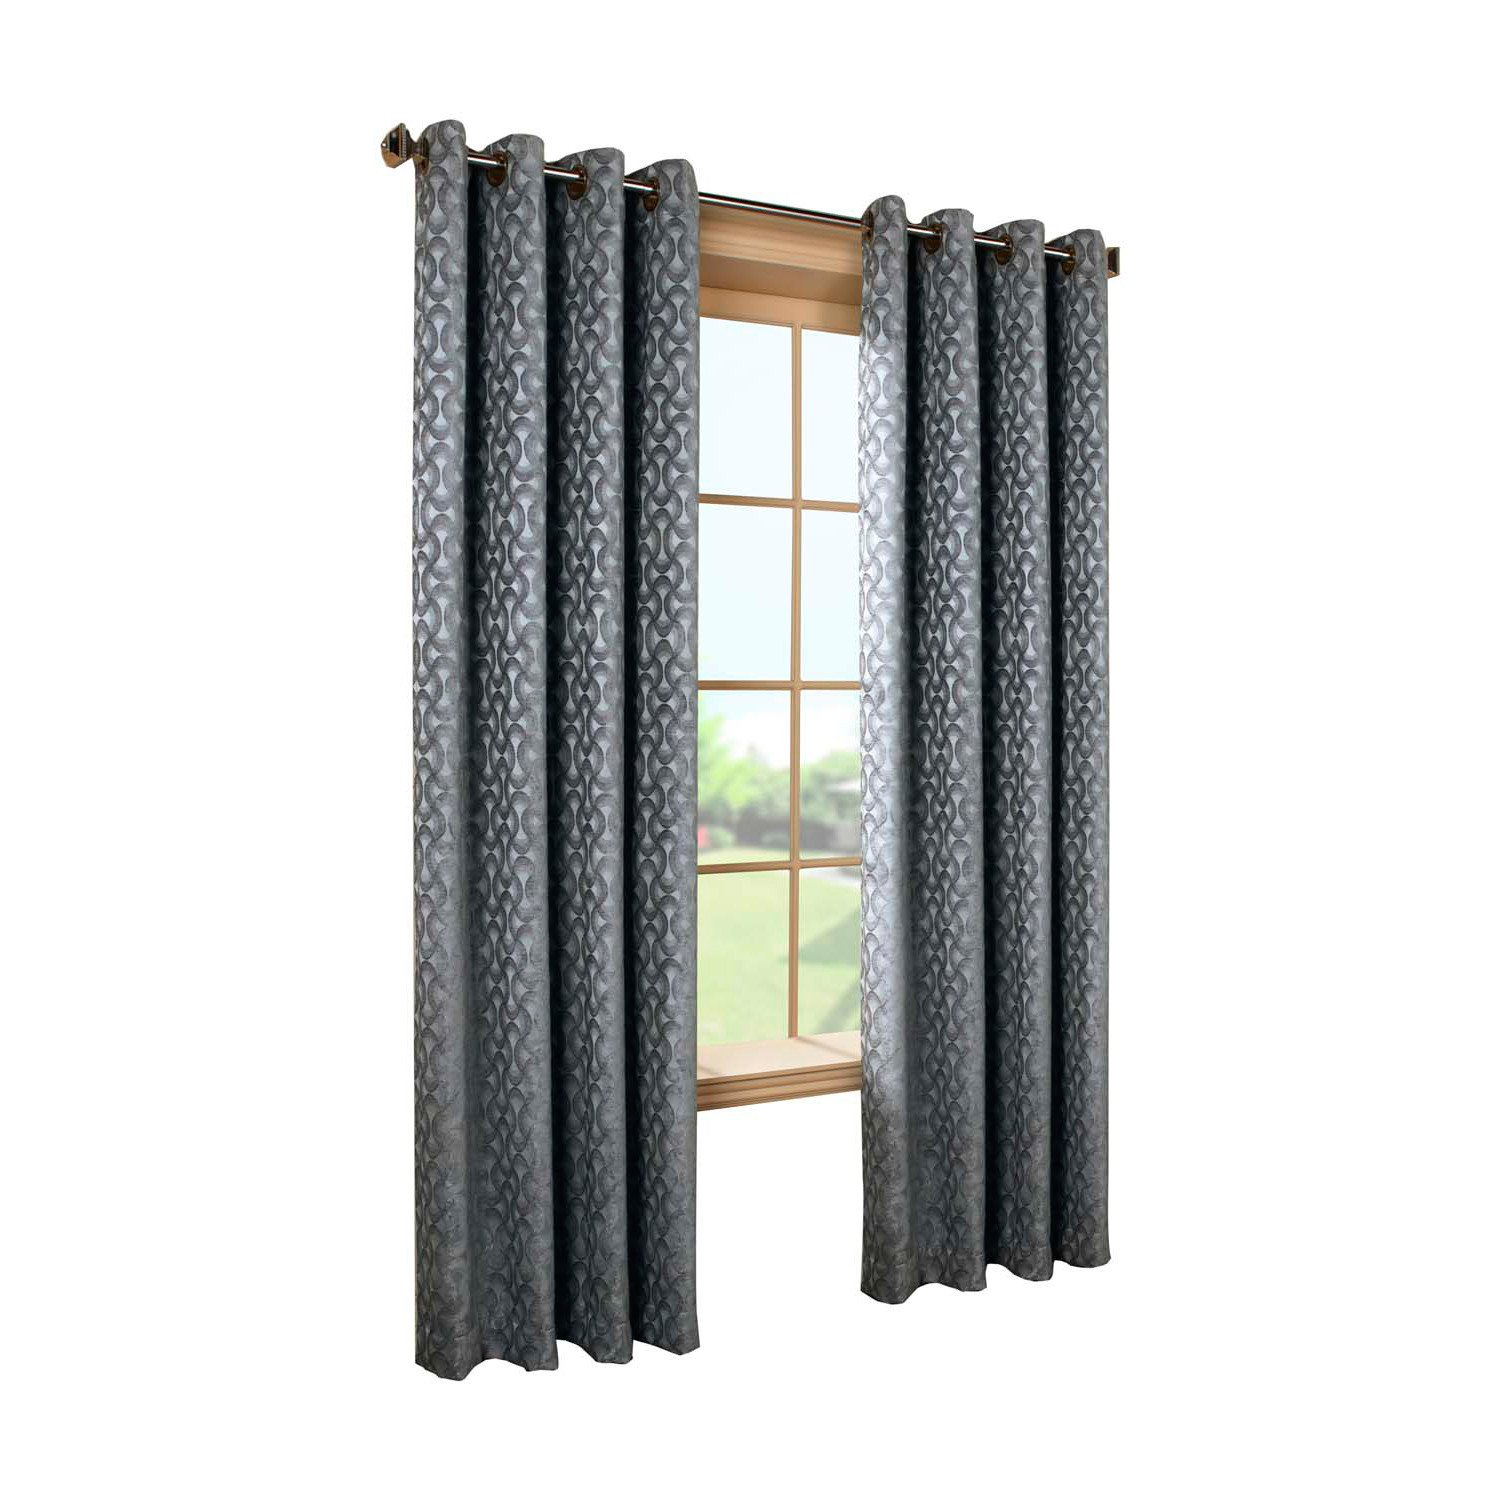 Common Wealth Home Fashions Rope Chenille Couture Patterned Curtain, 52 x 84